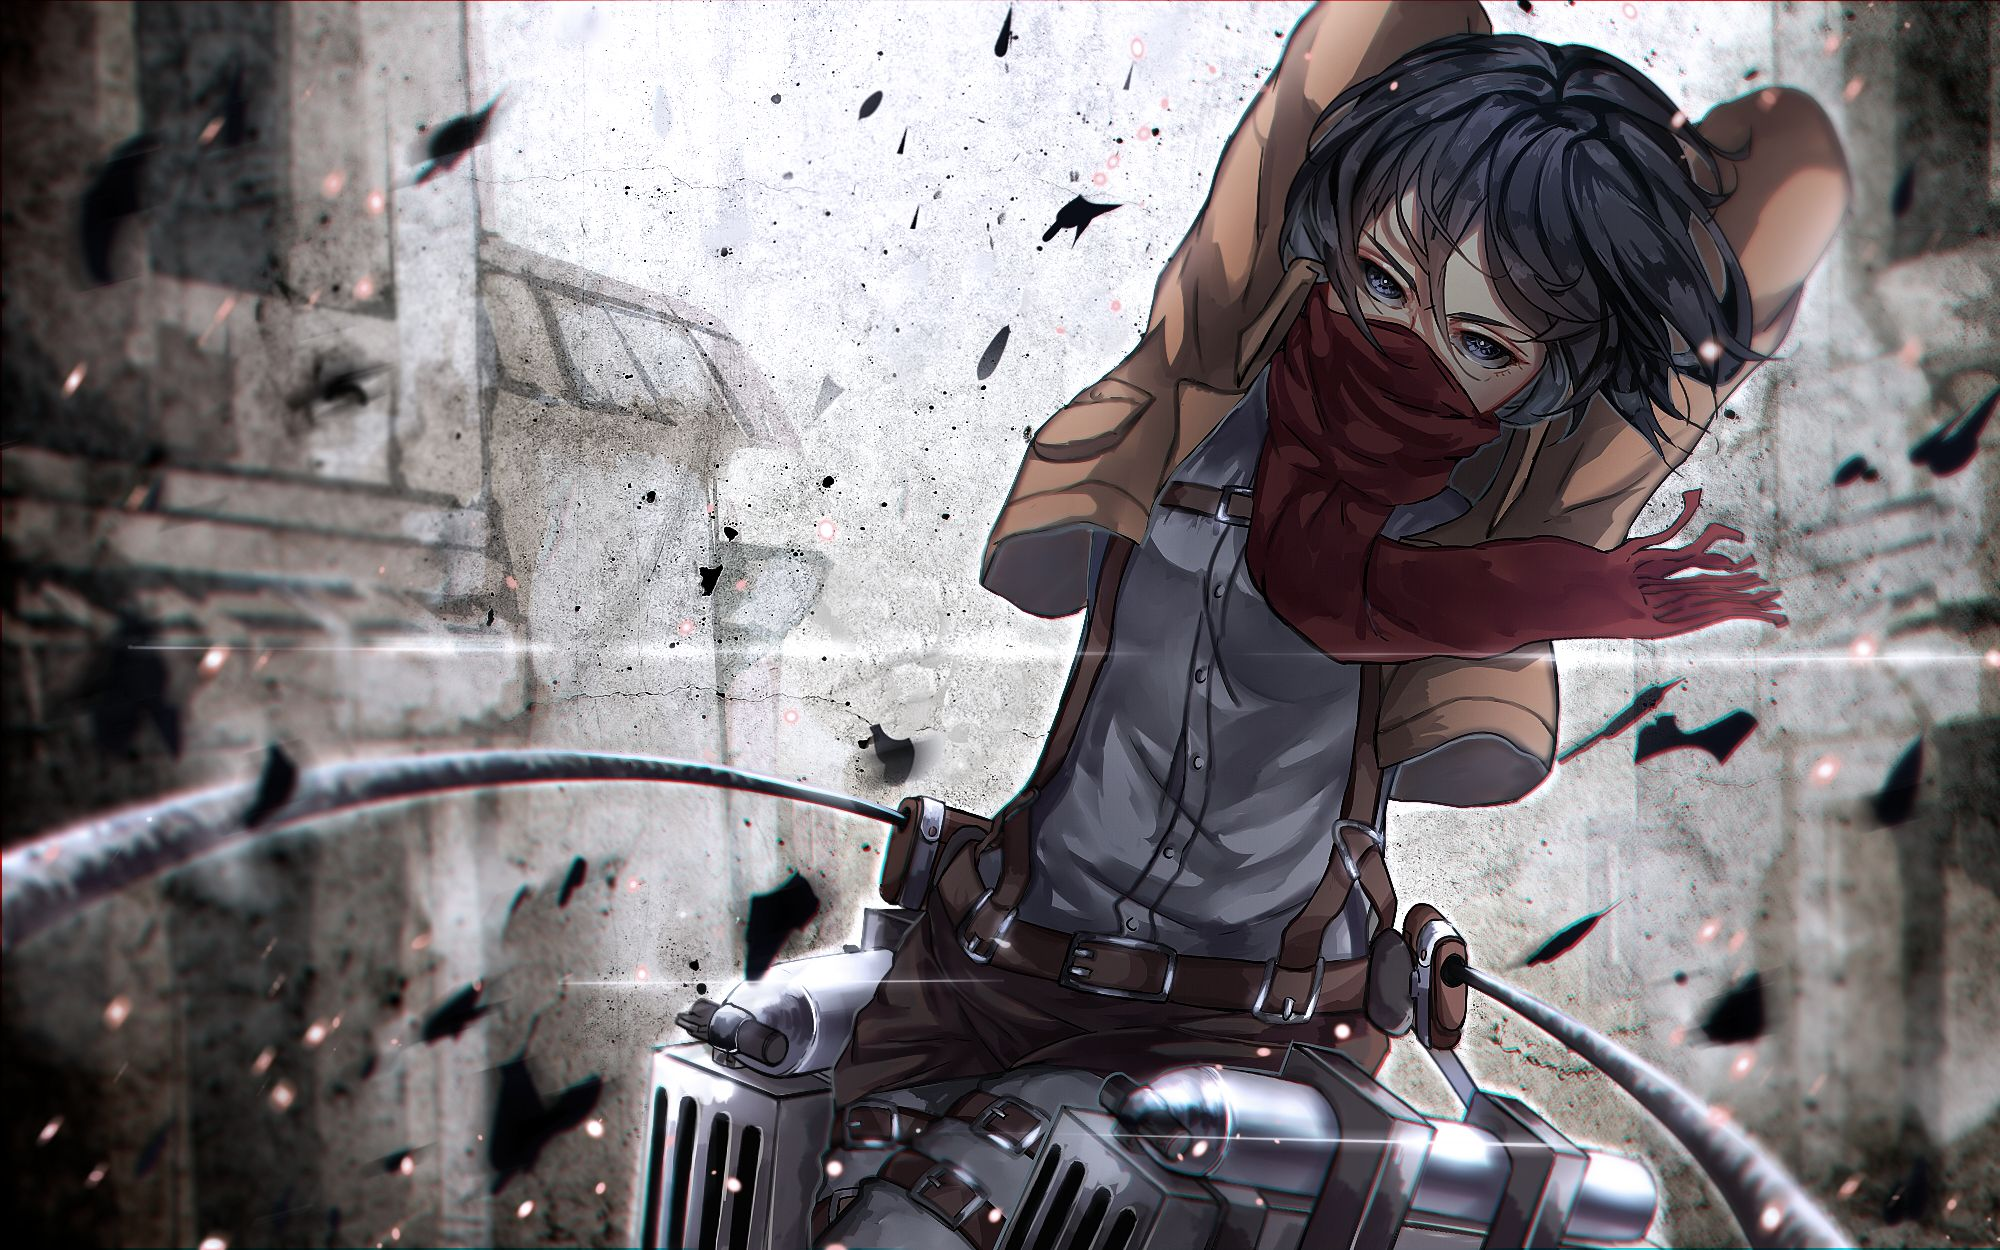 Anime Wallpaper Attack On Titan Mikasa Mikasa Ackerman Attack On Titan Hd Wallpaper 2108150 Download Wallpapers In 2020 Attack On Titan Anime Attack On Titan Titans